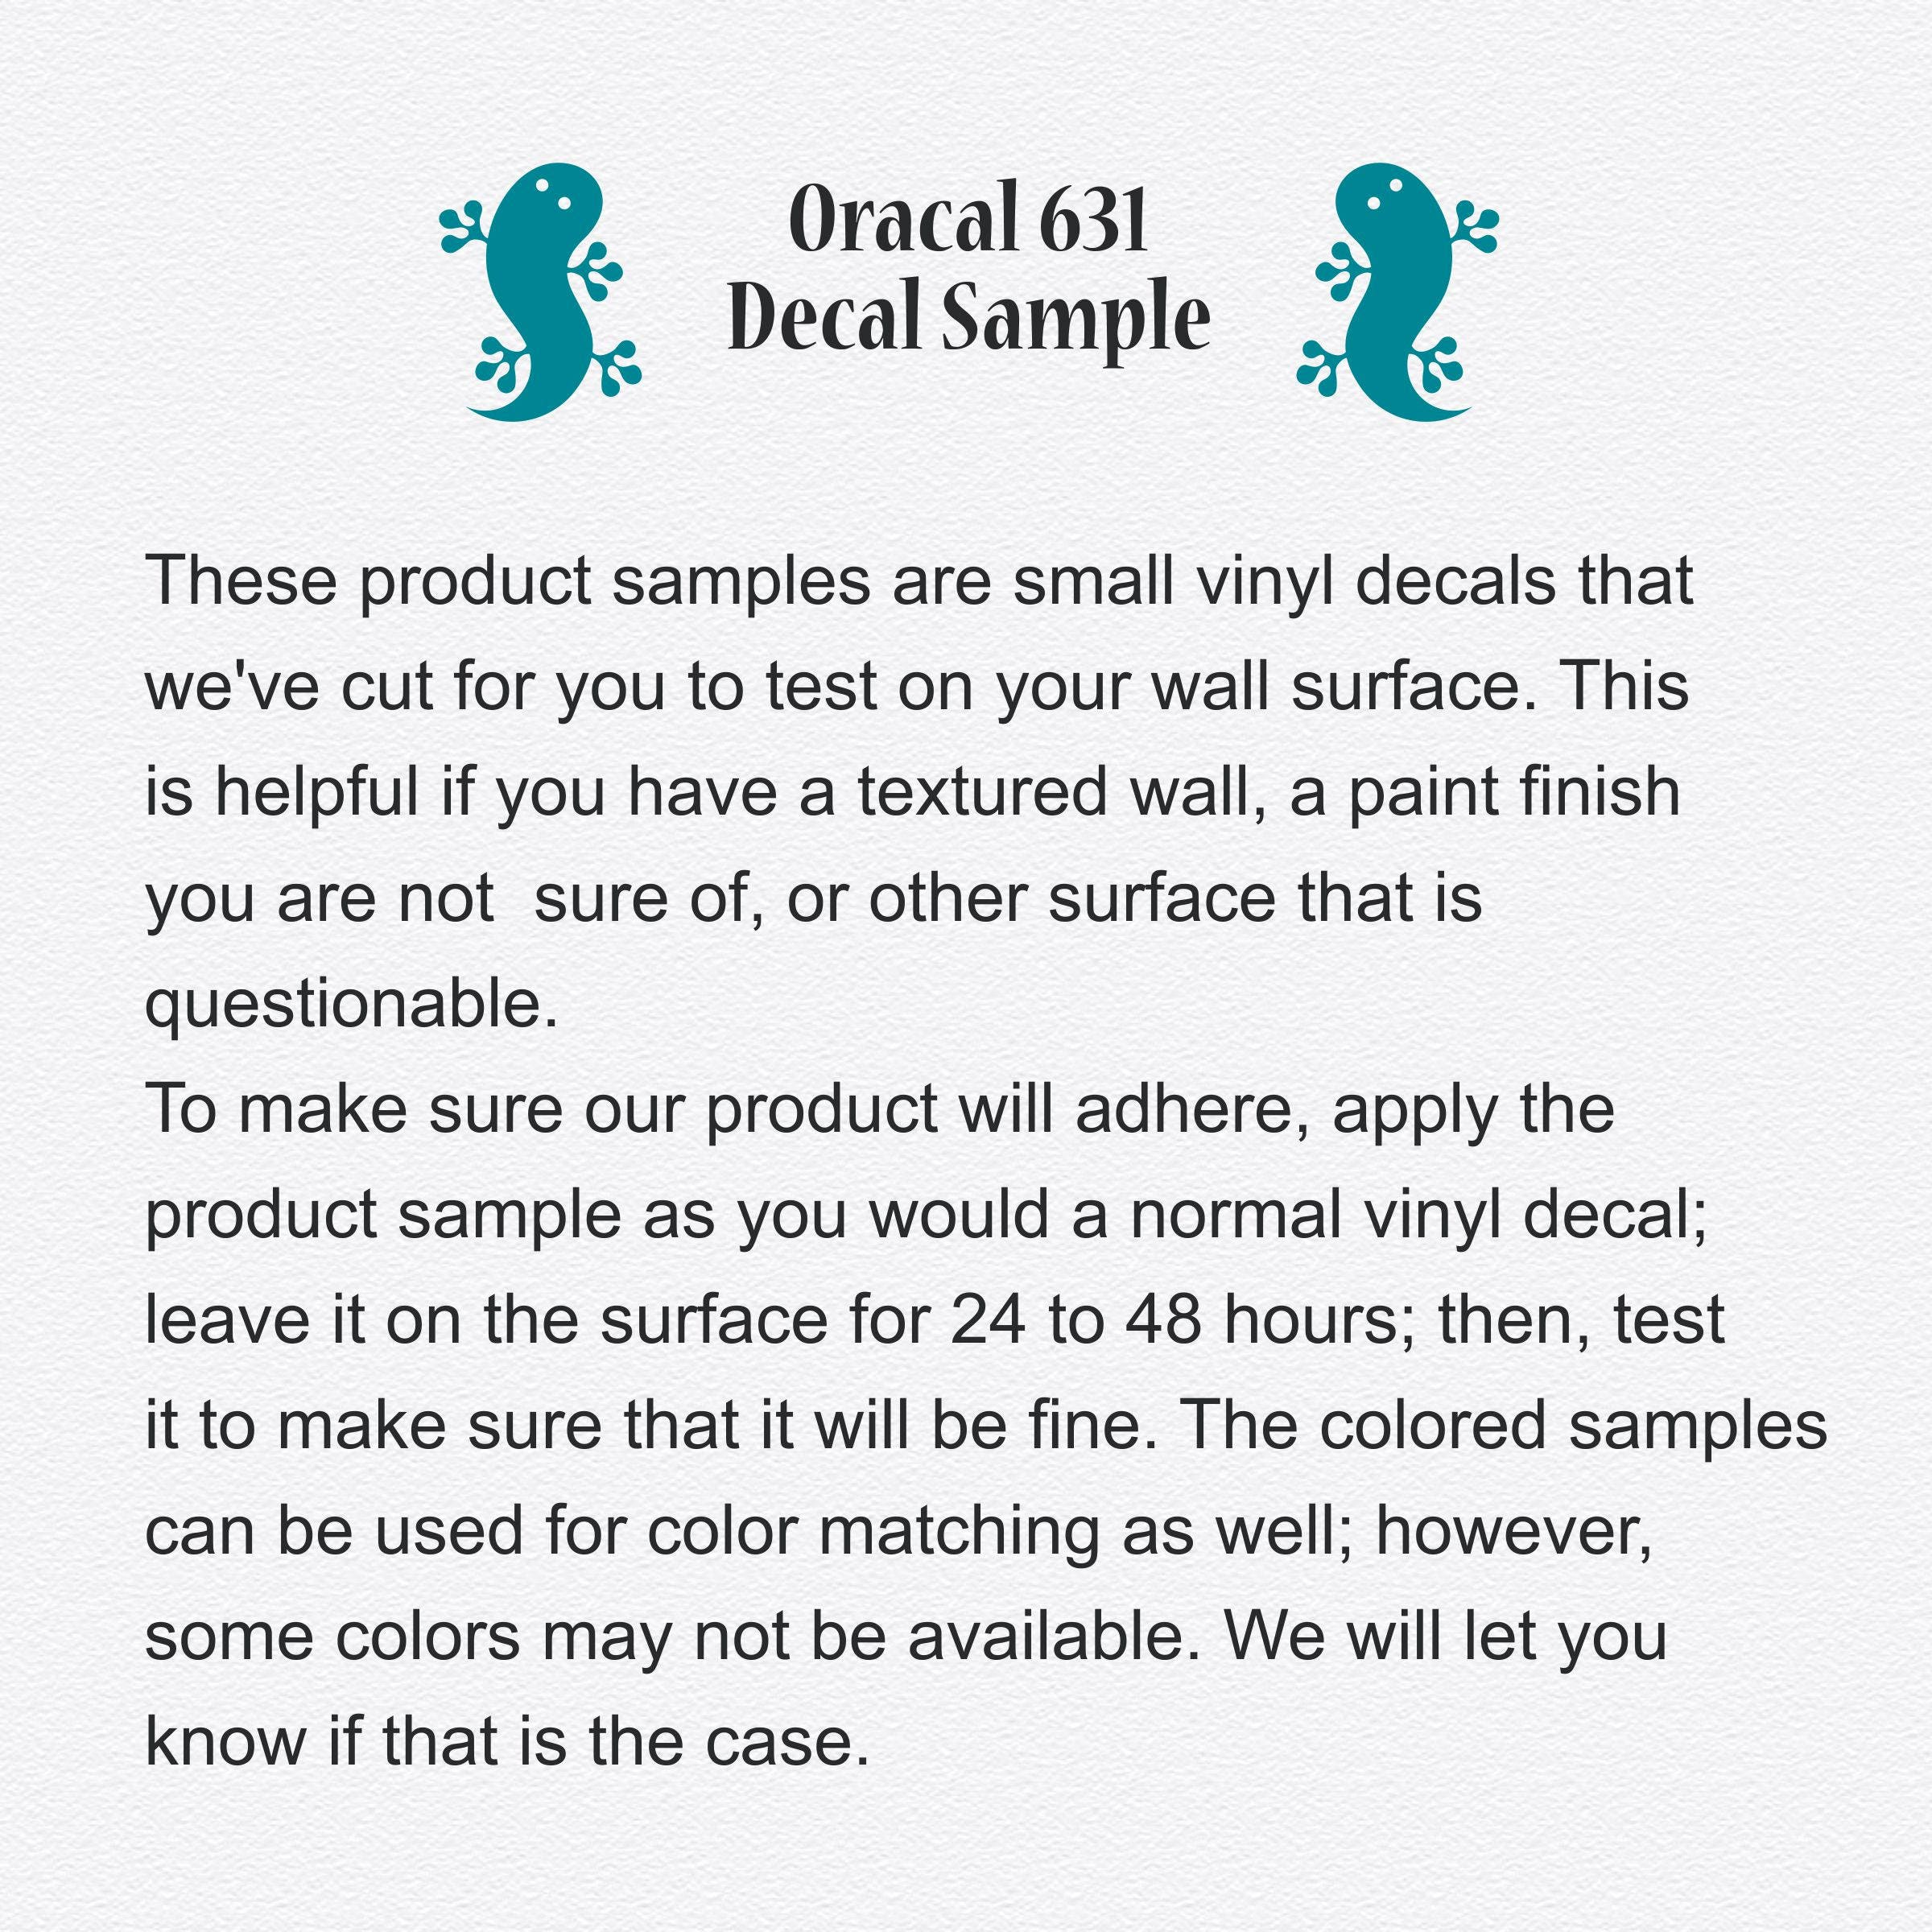 Oracal  Removable Vinyl Decal Samples Gecko Vinyl Wall - How to make vinyl decals stick to textured walls